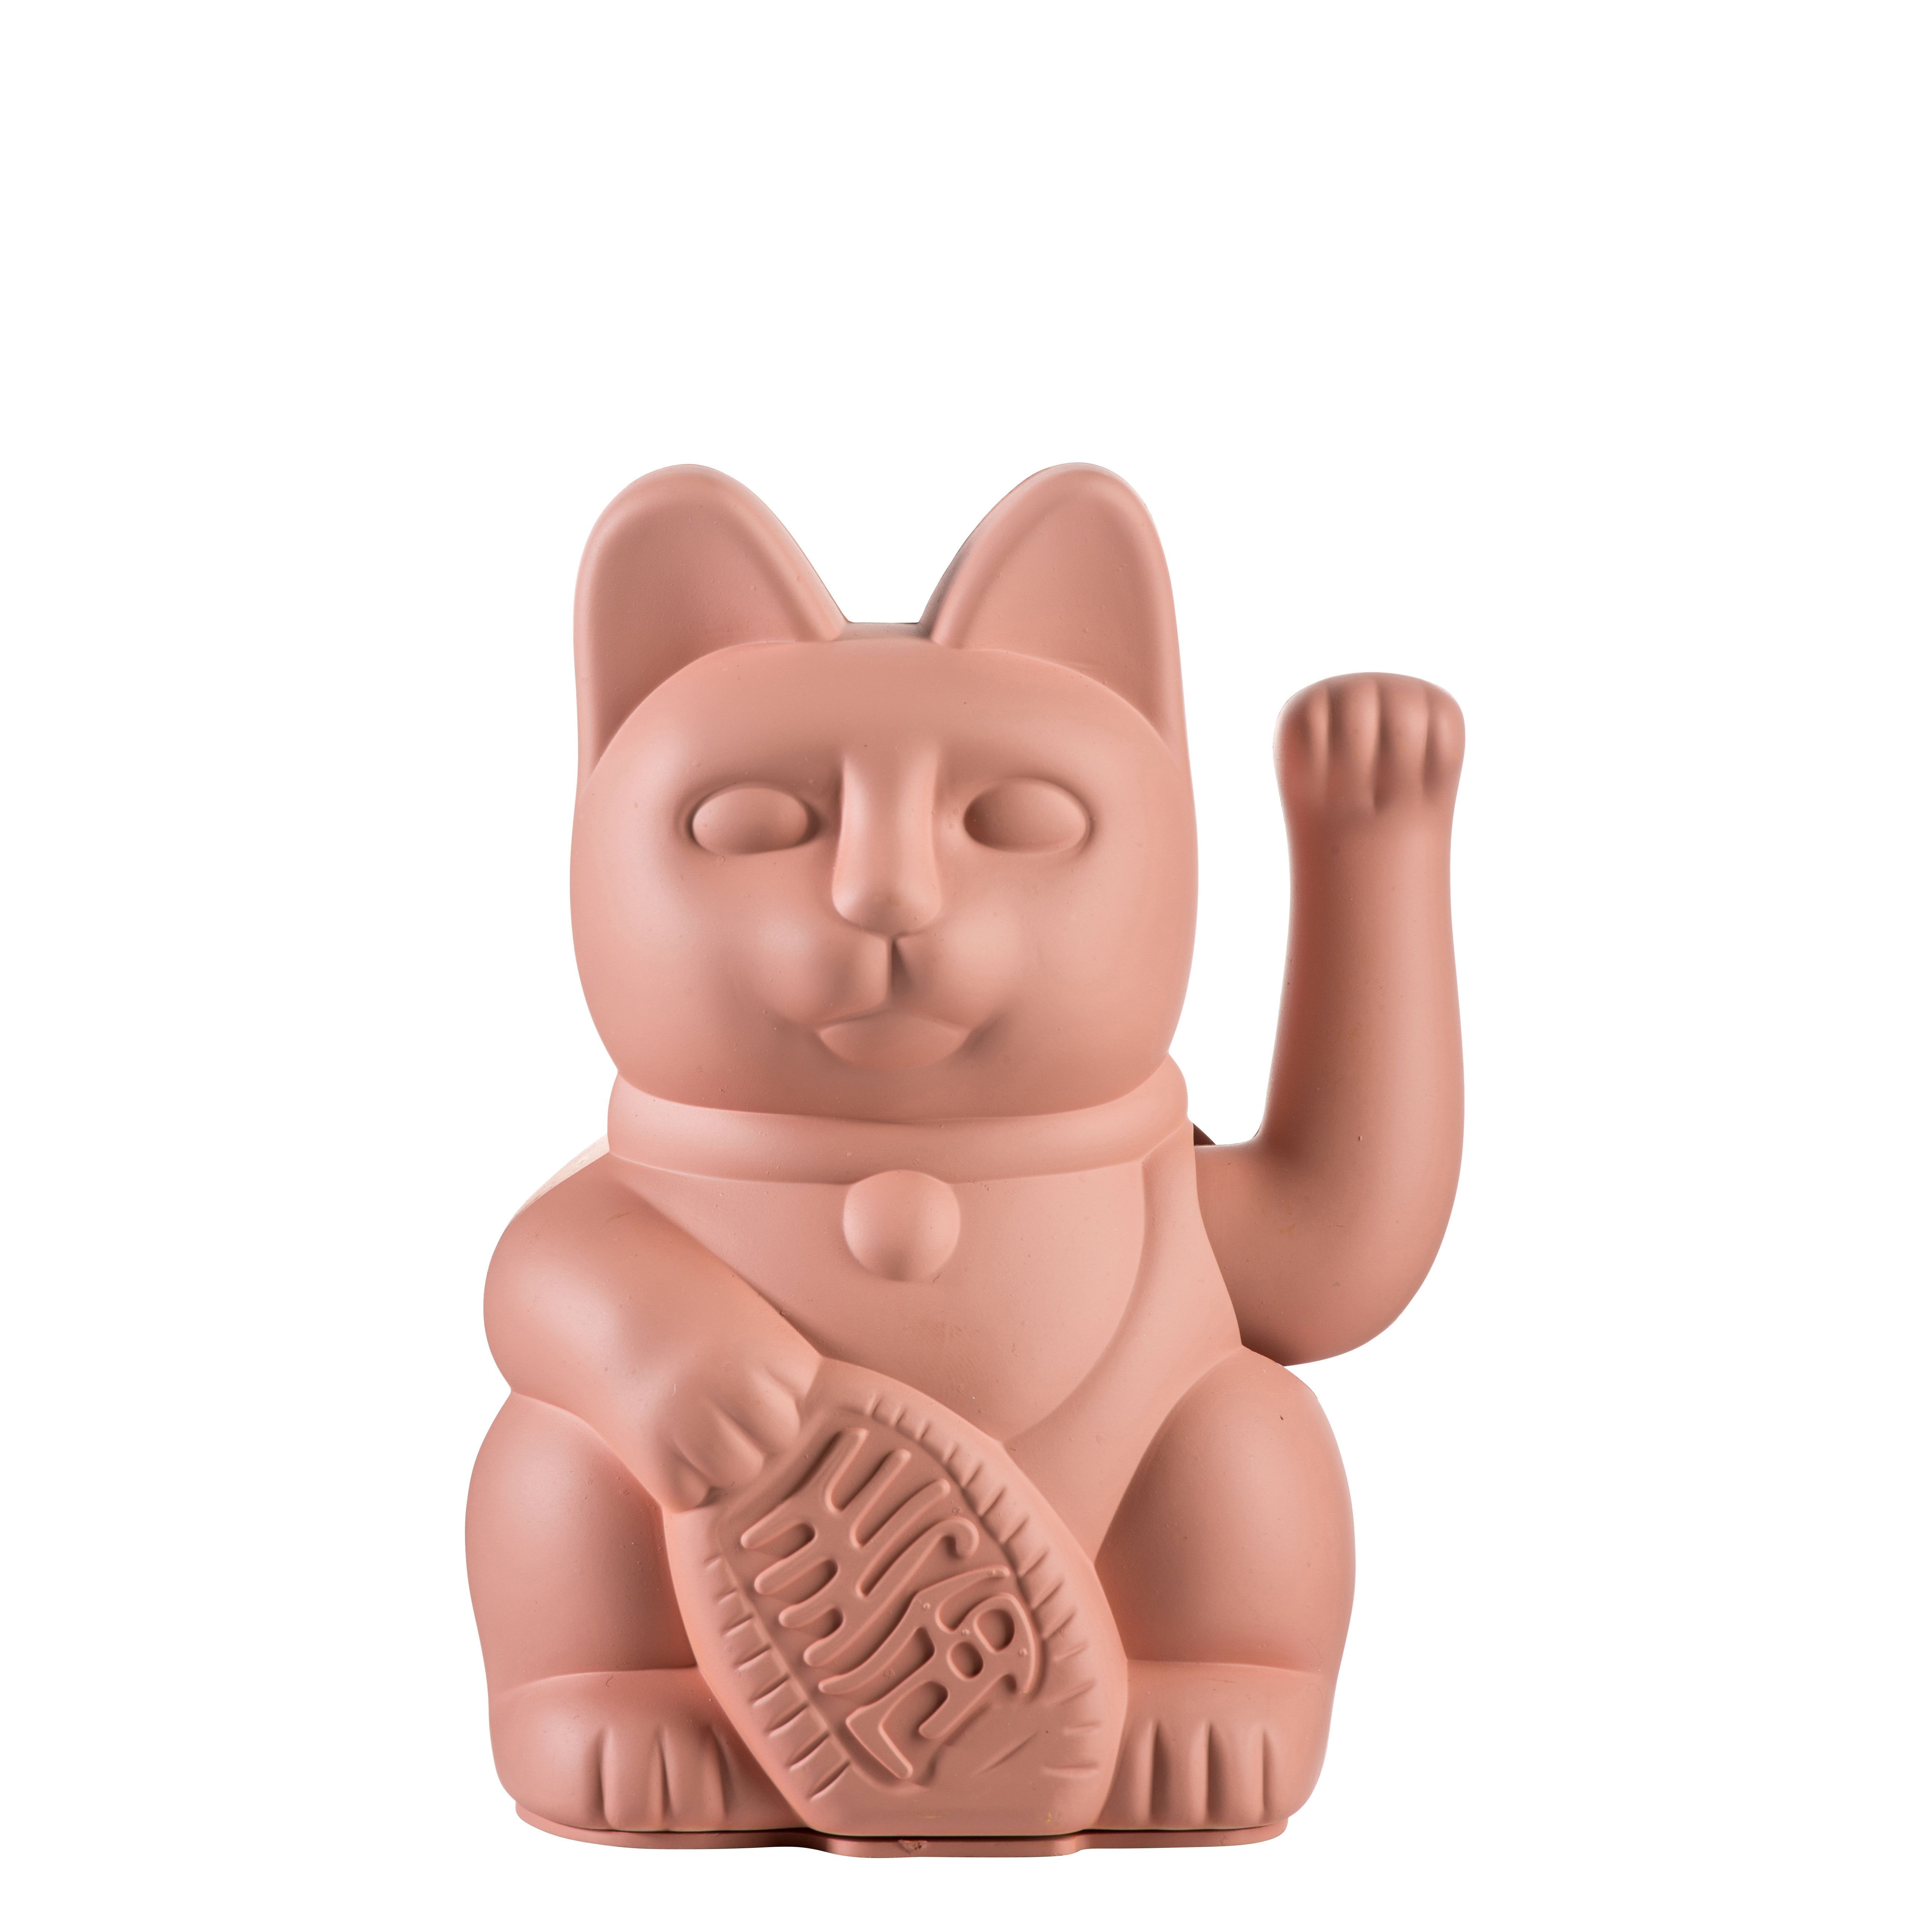 Decoration - Children's Home Accessories - Lucky Cat Figurine - / Plastic by Donkey - Pink - Plastic